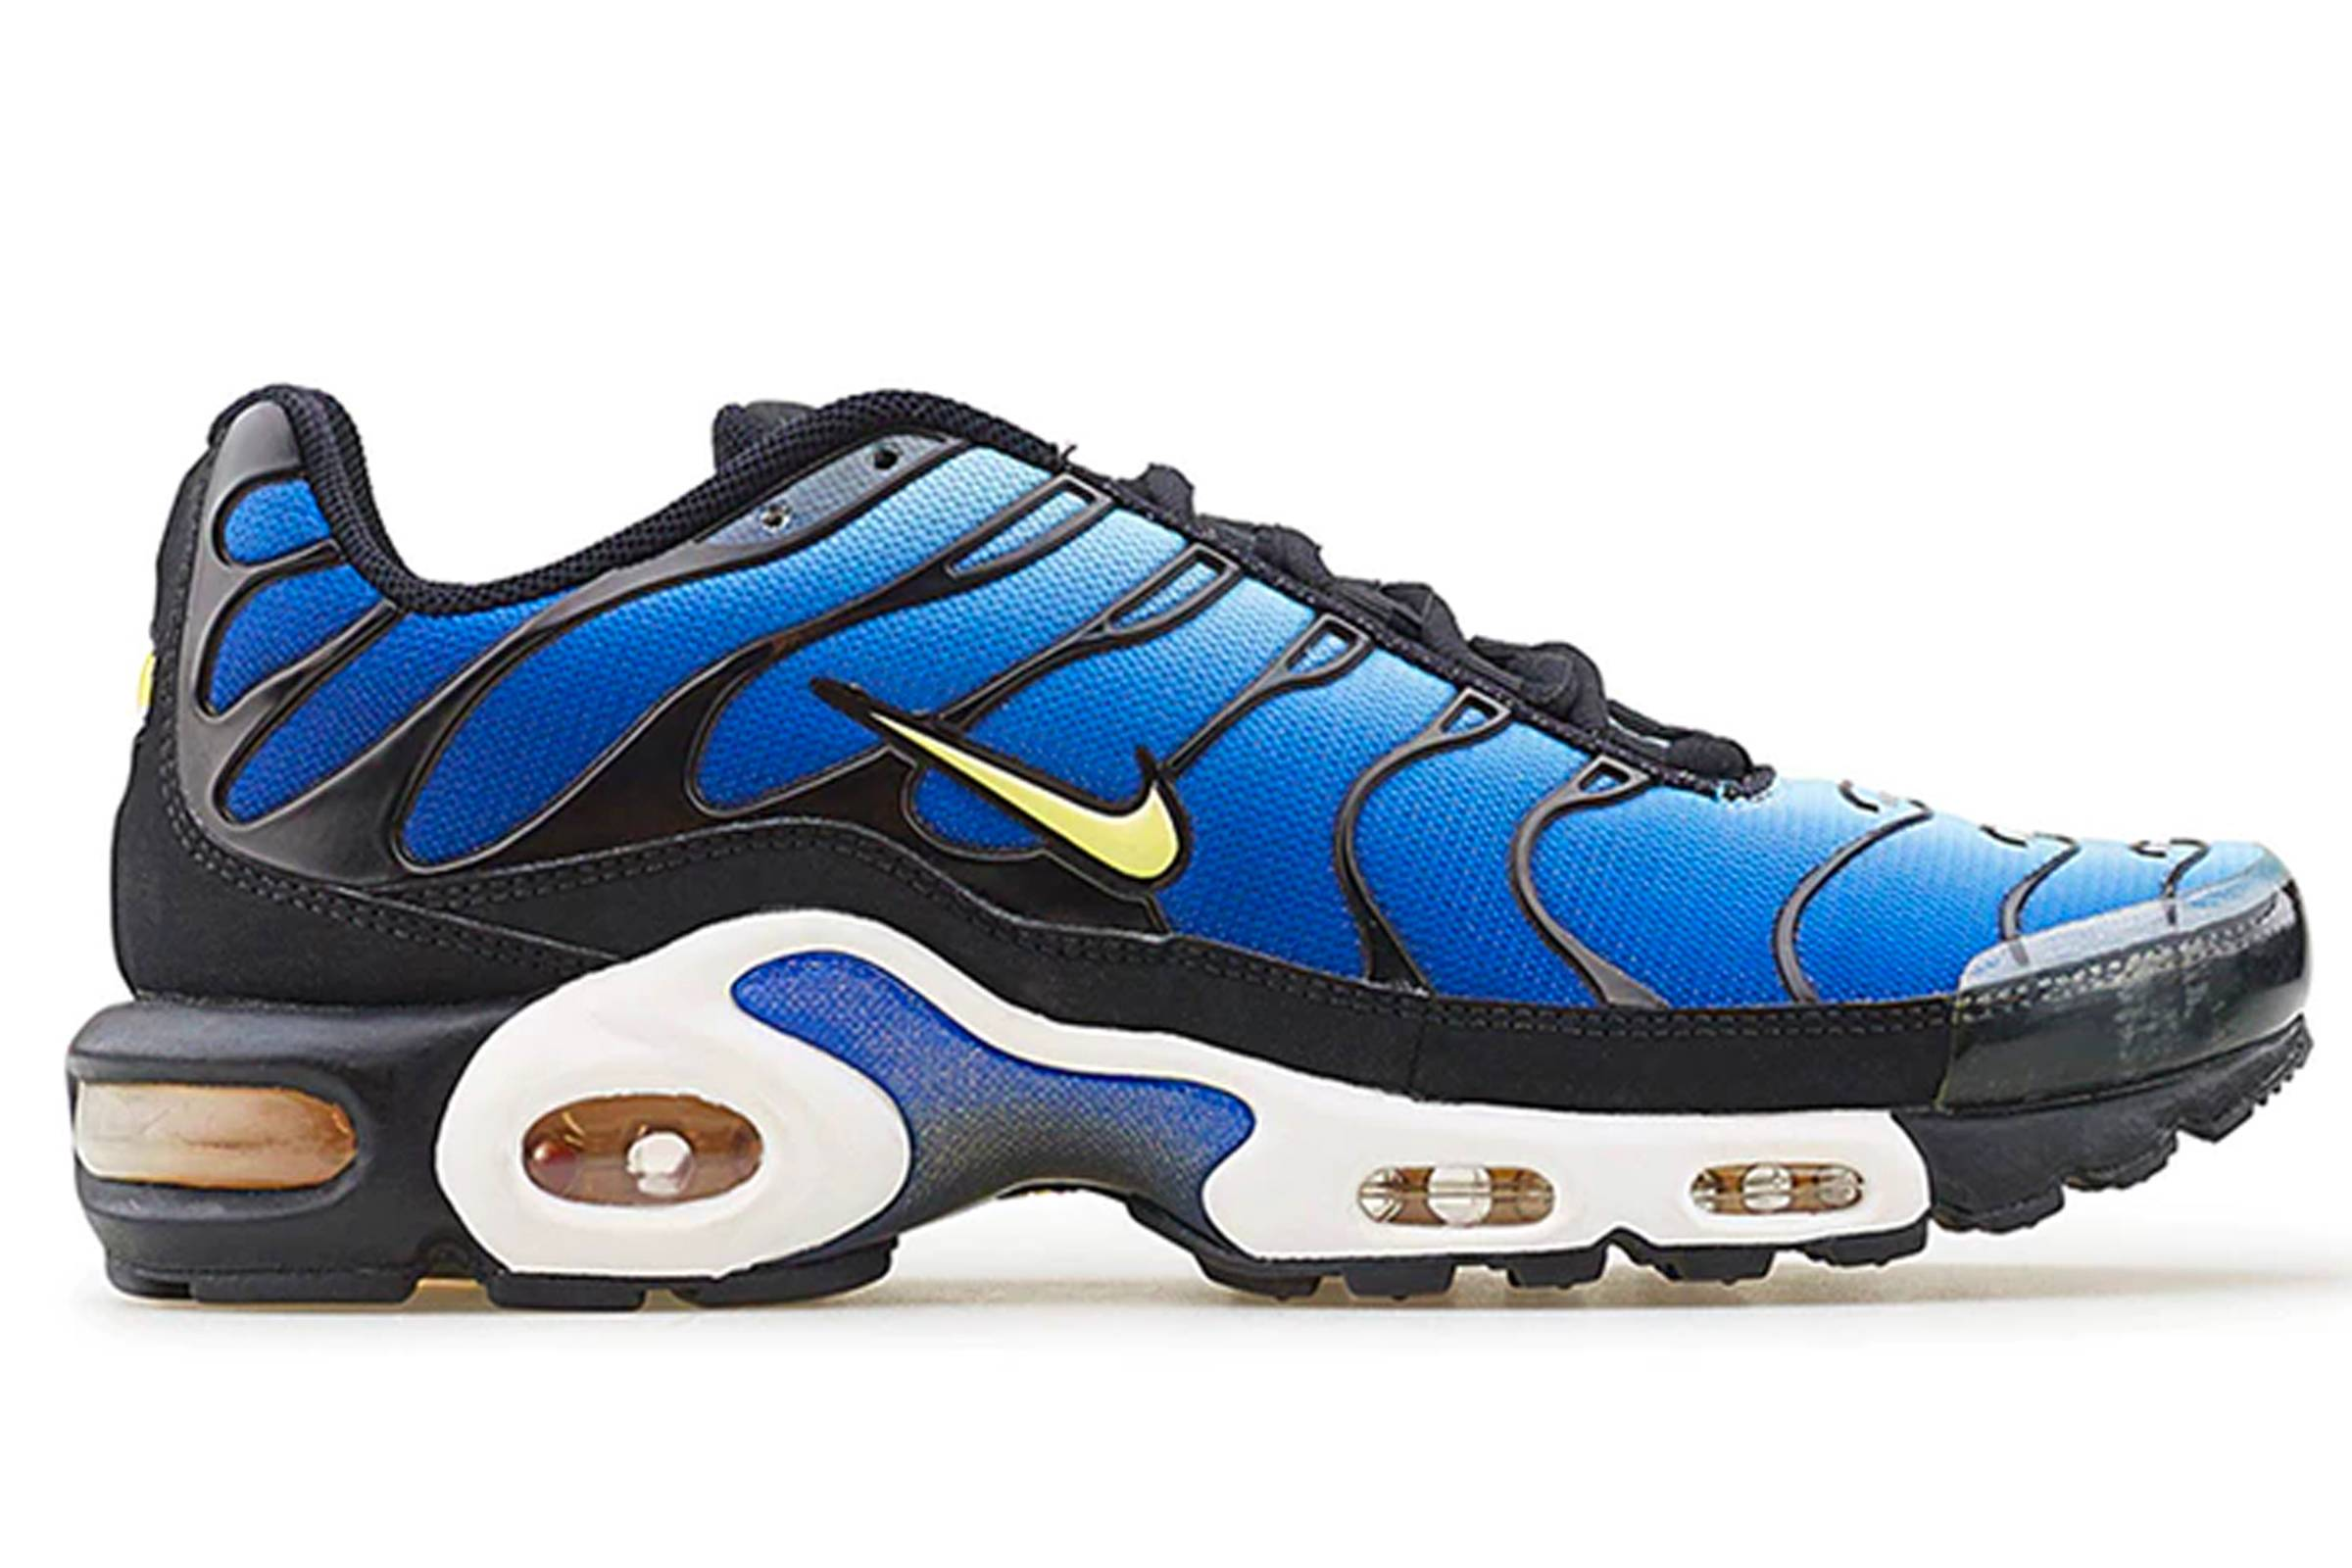 7d4f29ddeb Tuned Up: A History of the Air Max Plus - Air Max Plus History | Grailed